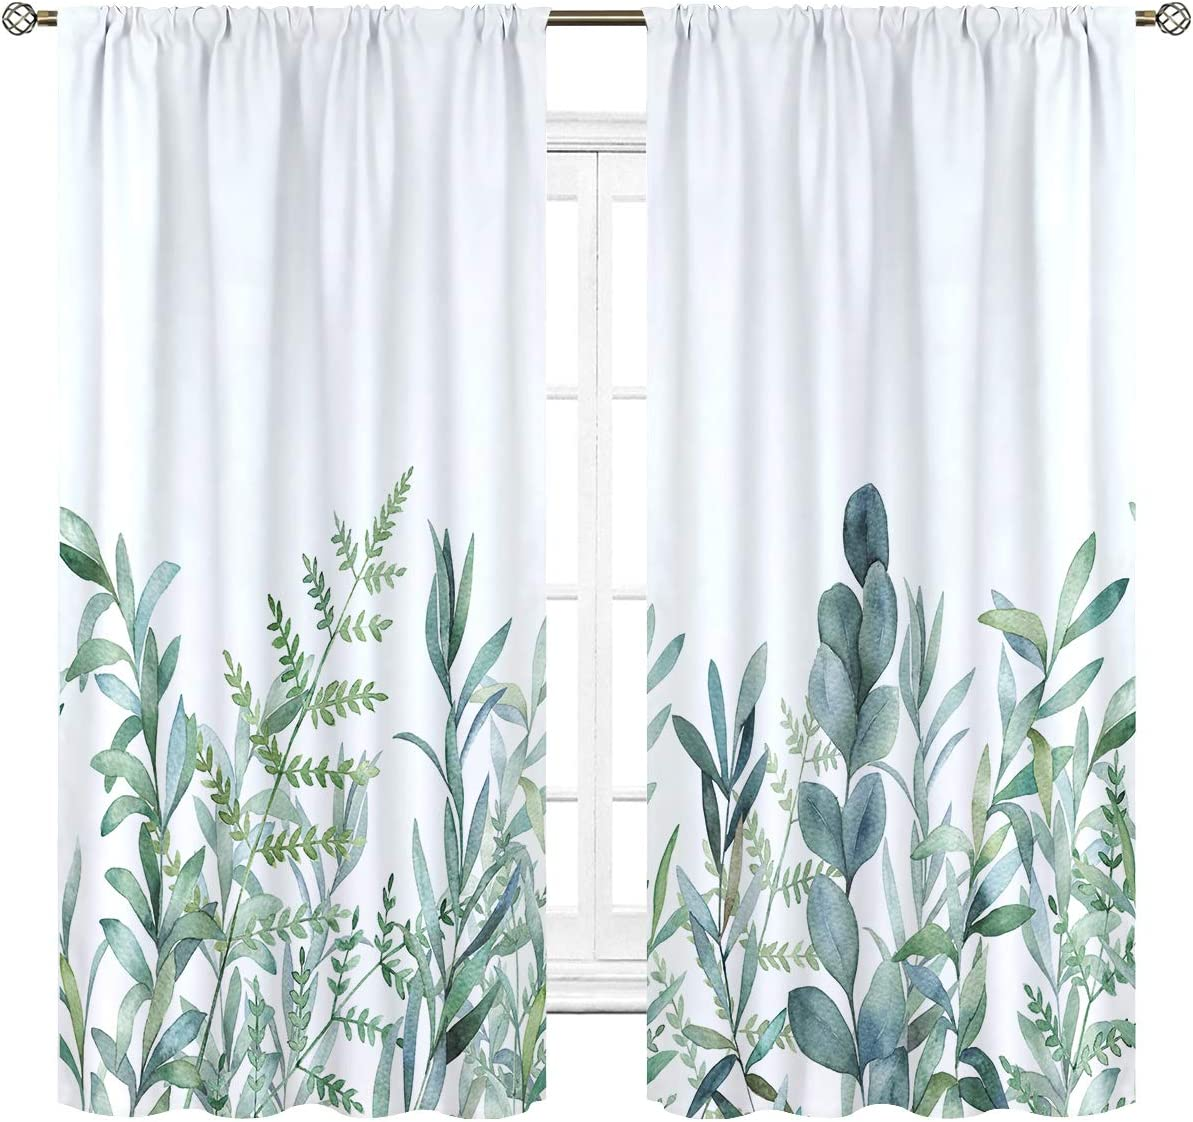 Cinbloo Green Leaves Curtains Rod Pocket 42 W x 63 L Inch Nature Plant Spring Rustic Botanical Branch Floral Herbs Art Printed Living Room Bedroom Window Drapes Treatment Fabric 2 Panels